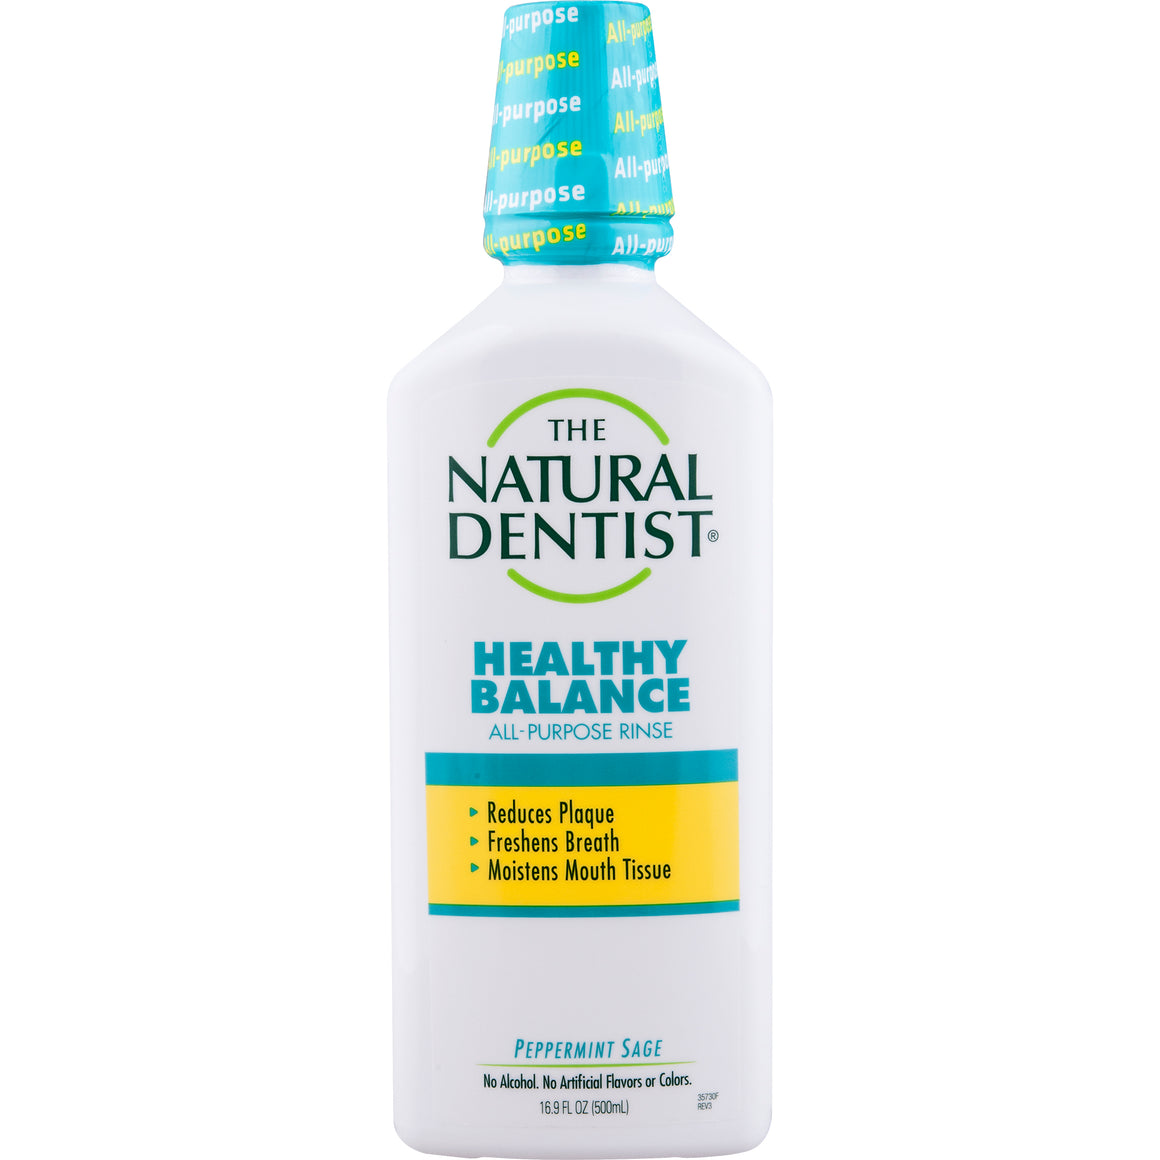 A bottle of Natural Dentist Healthy Balance Mouth Rinse Peppermint Sage